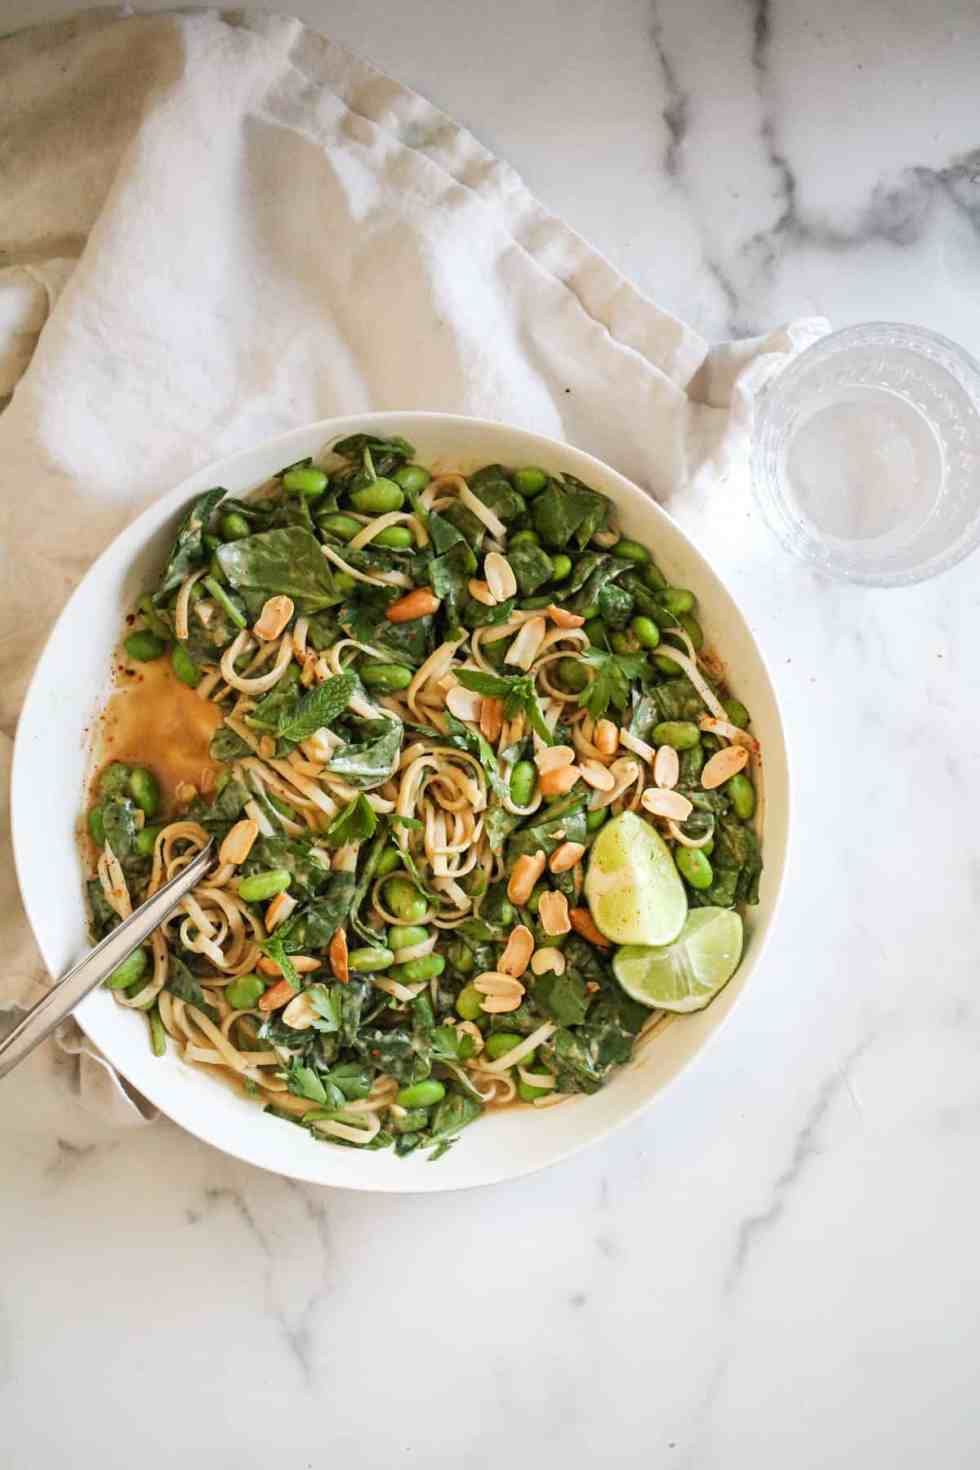 Overhead image of pad Thai-style noodles on white marble countertop.